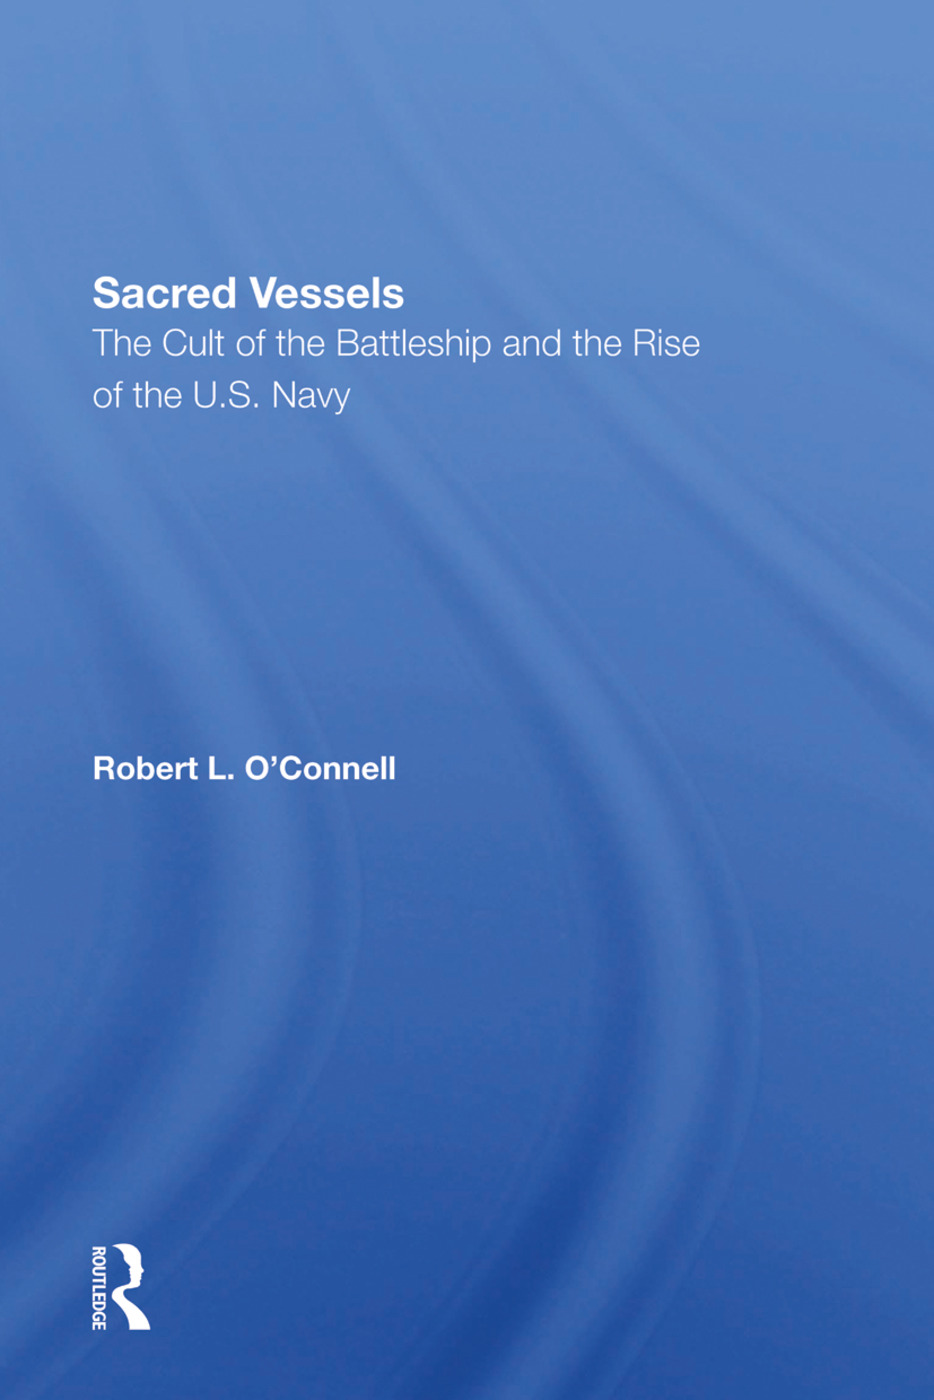 Sacred Vessels: The Cult Of The Battleship And The Rise Of The U.S. Navy book cover